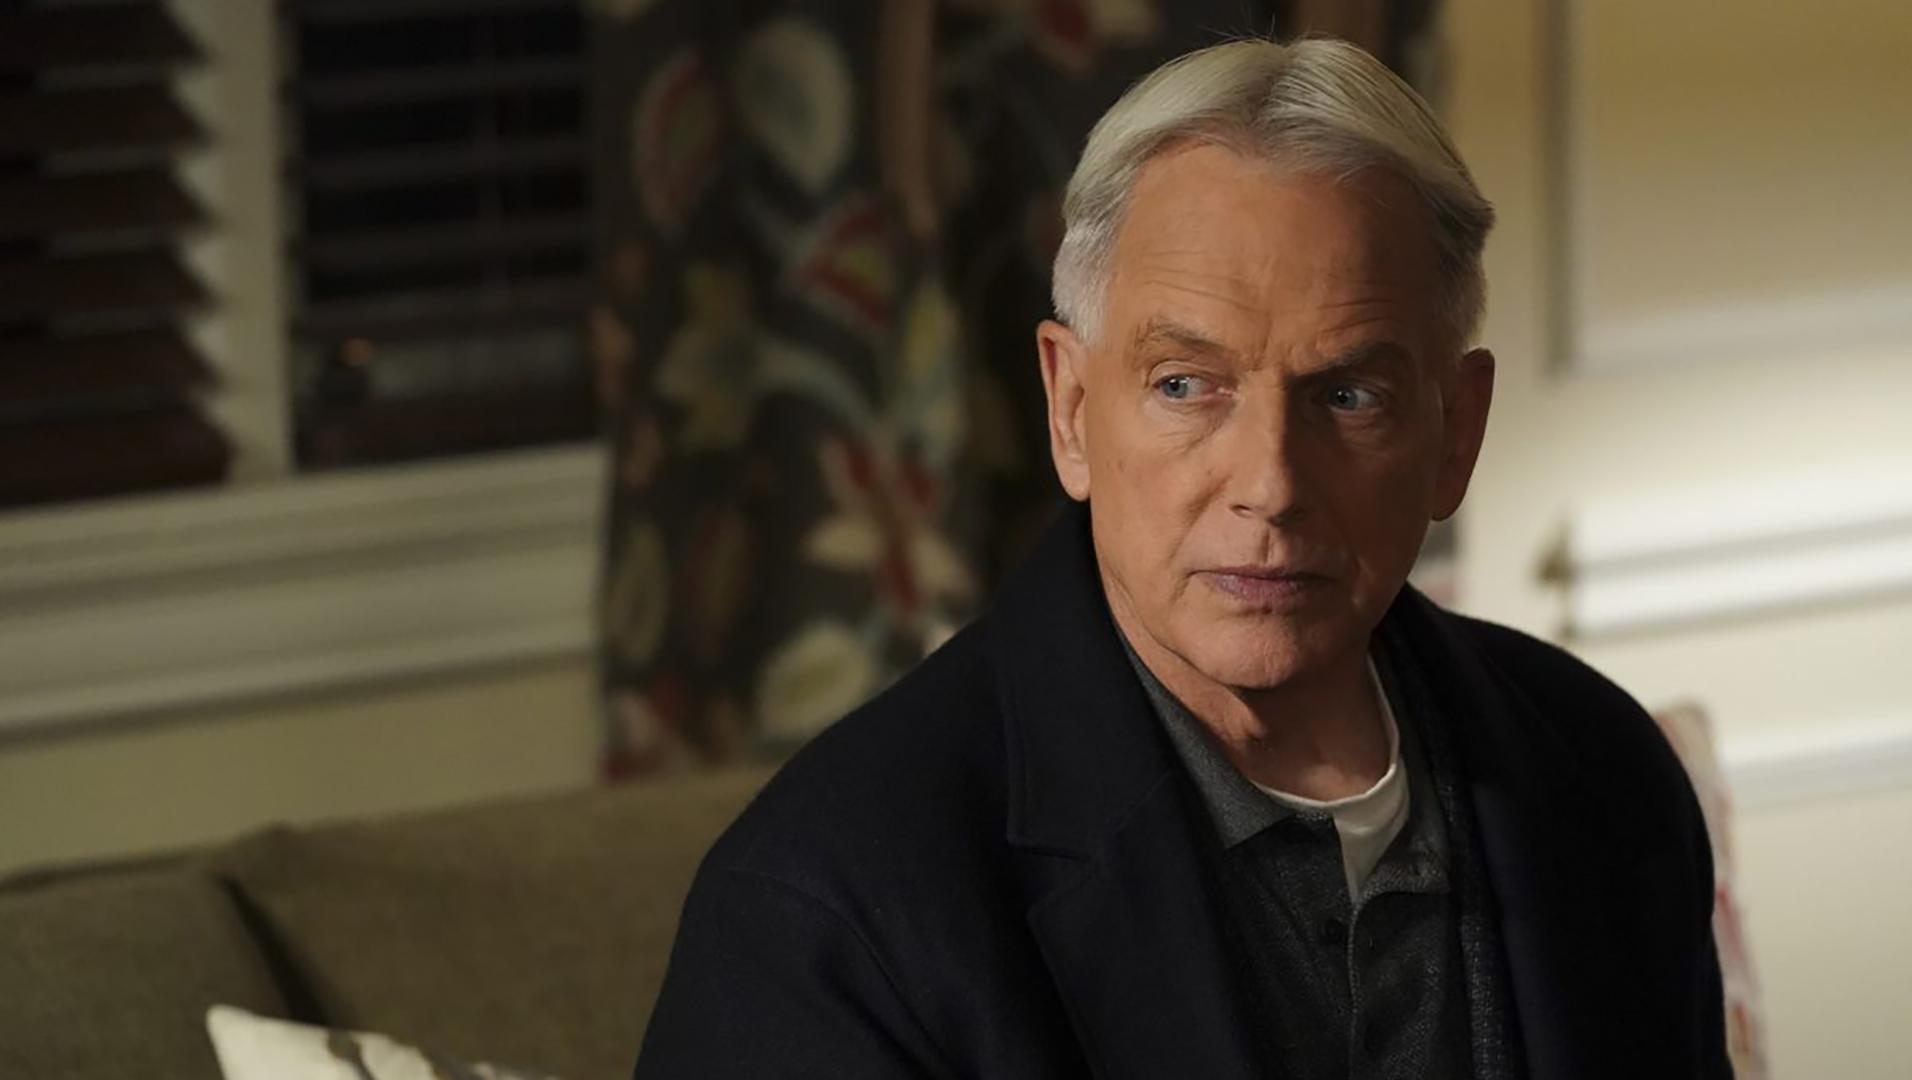 NCIS wouldn't be the same without Gibbs